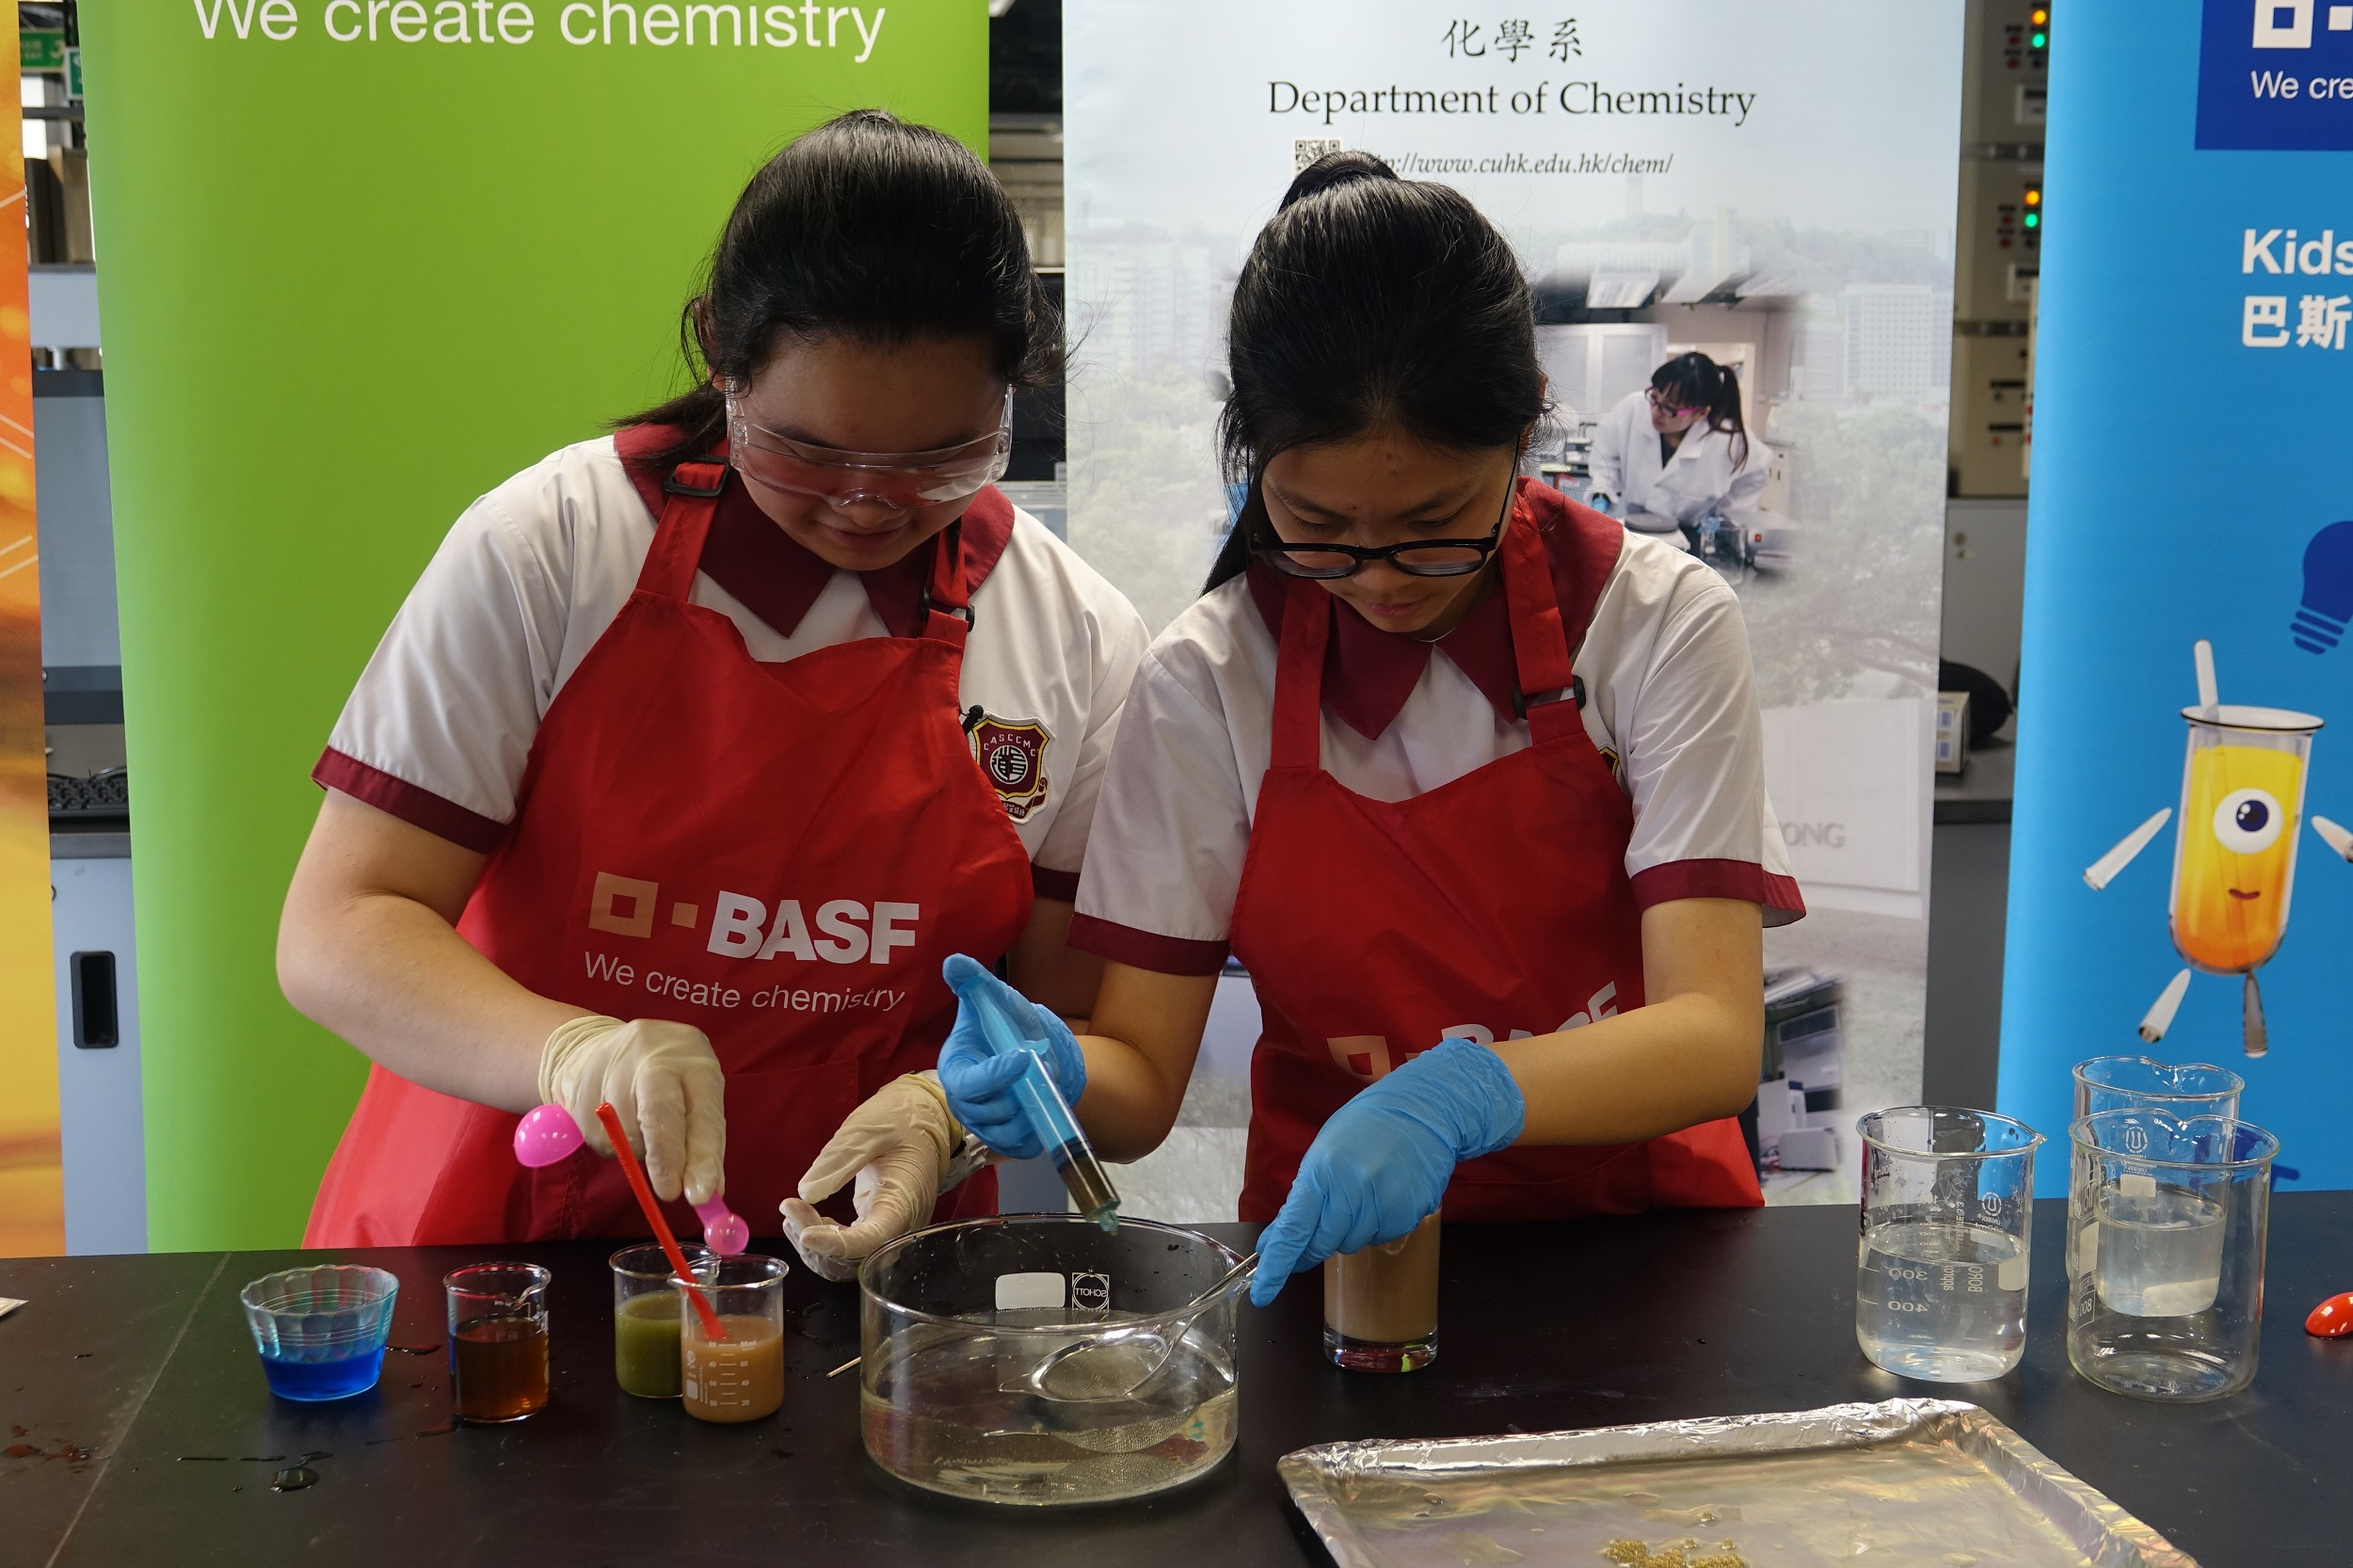 Helia Wong (left) and Phoebe Yeung (right) show the chemical process behind how liquids can be formed into spheres with the use of sodium alginate and calcium lactate.